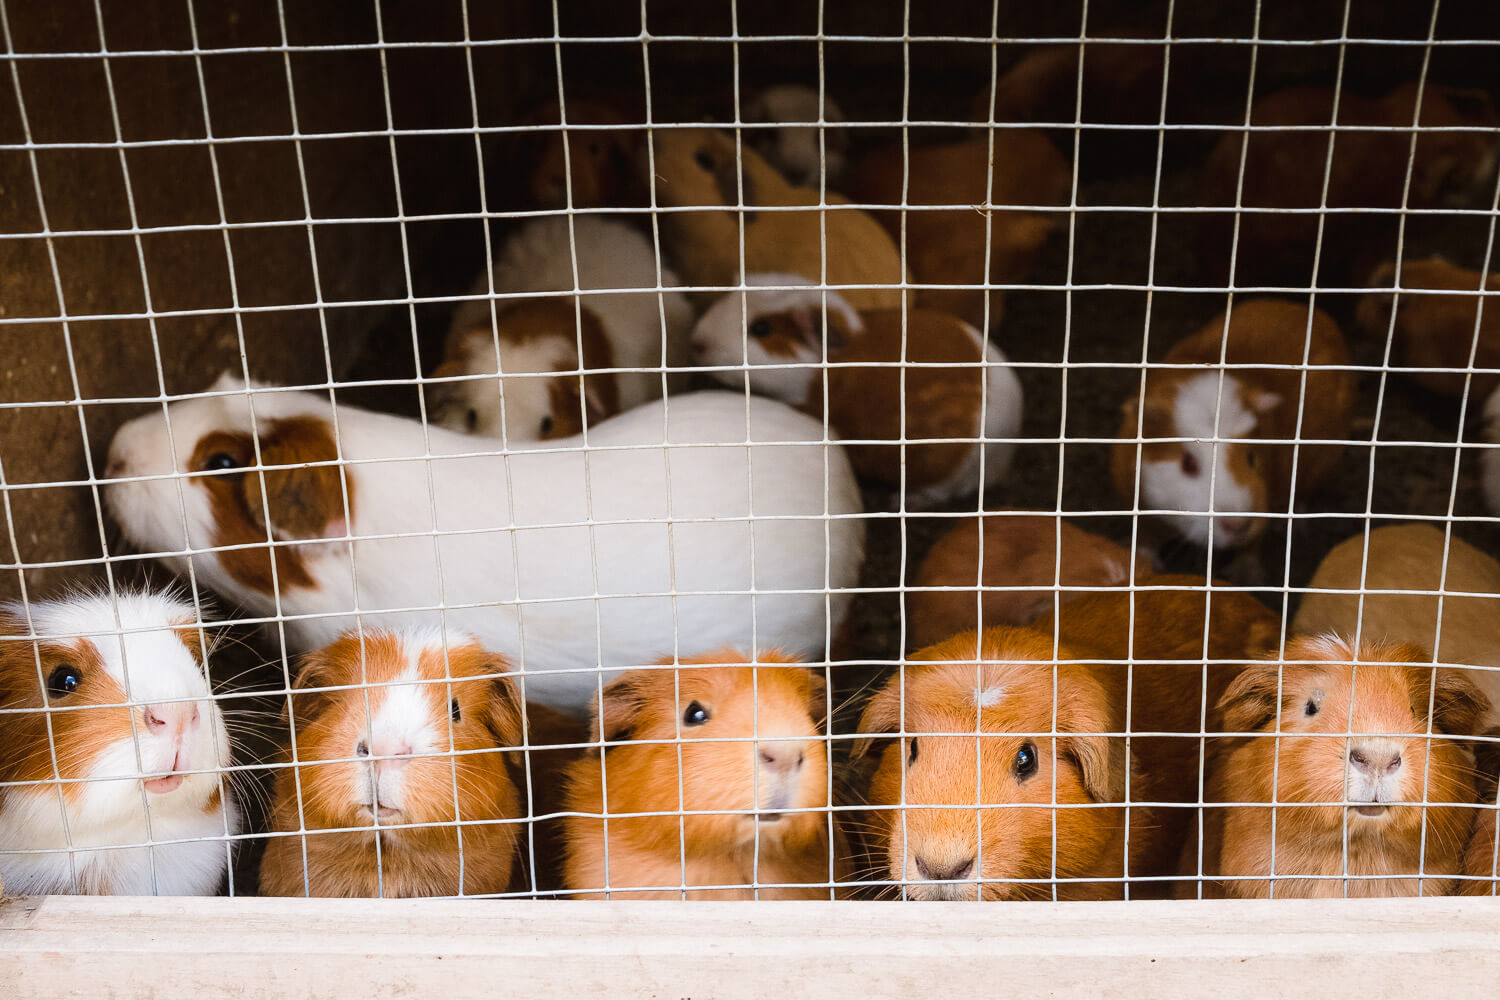 """Guinea pigs """"cuy"""" in The Sacred Valley, Peru. Travel photography and guide by © Natasha Lequepeys for """"And Then I Met Yoko"""". #travelguide #photoblog #fujifilm #machupicchu #sacredvalleyitinerary"""